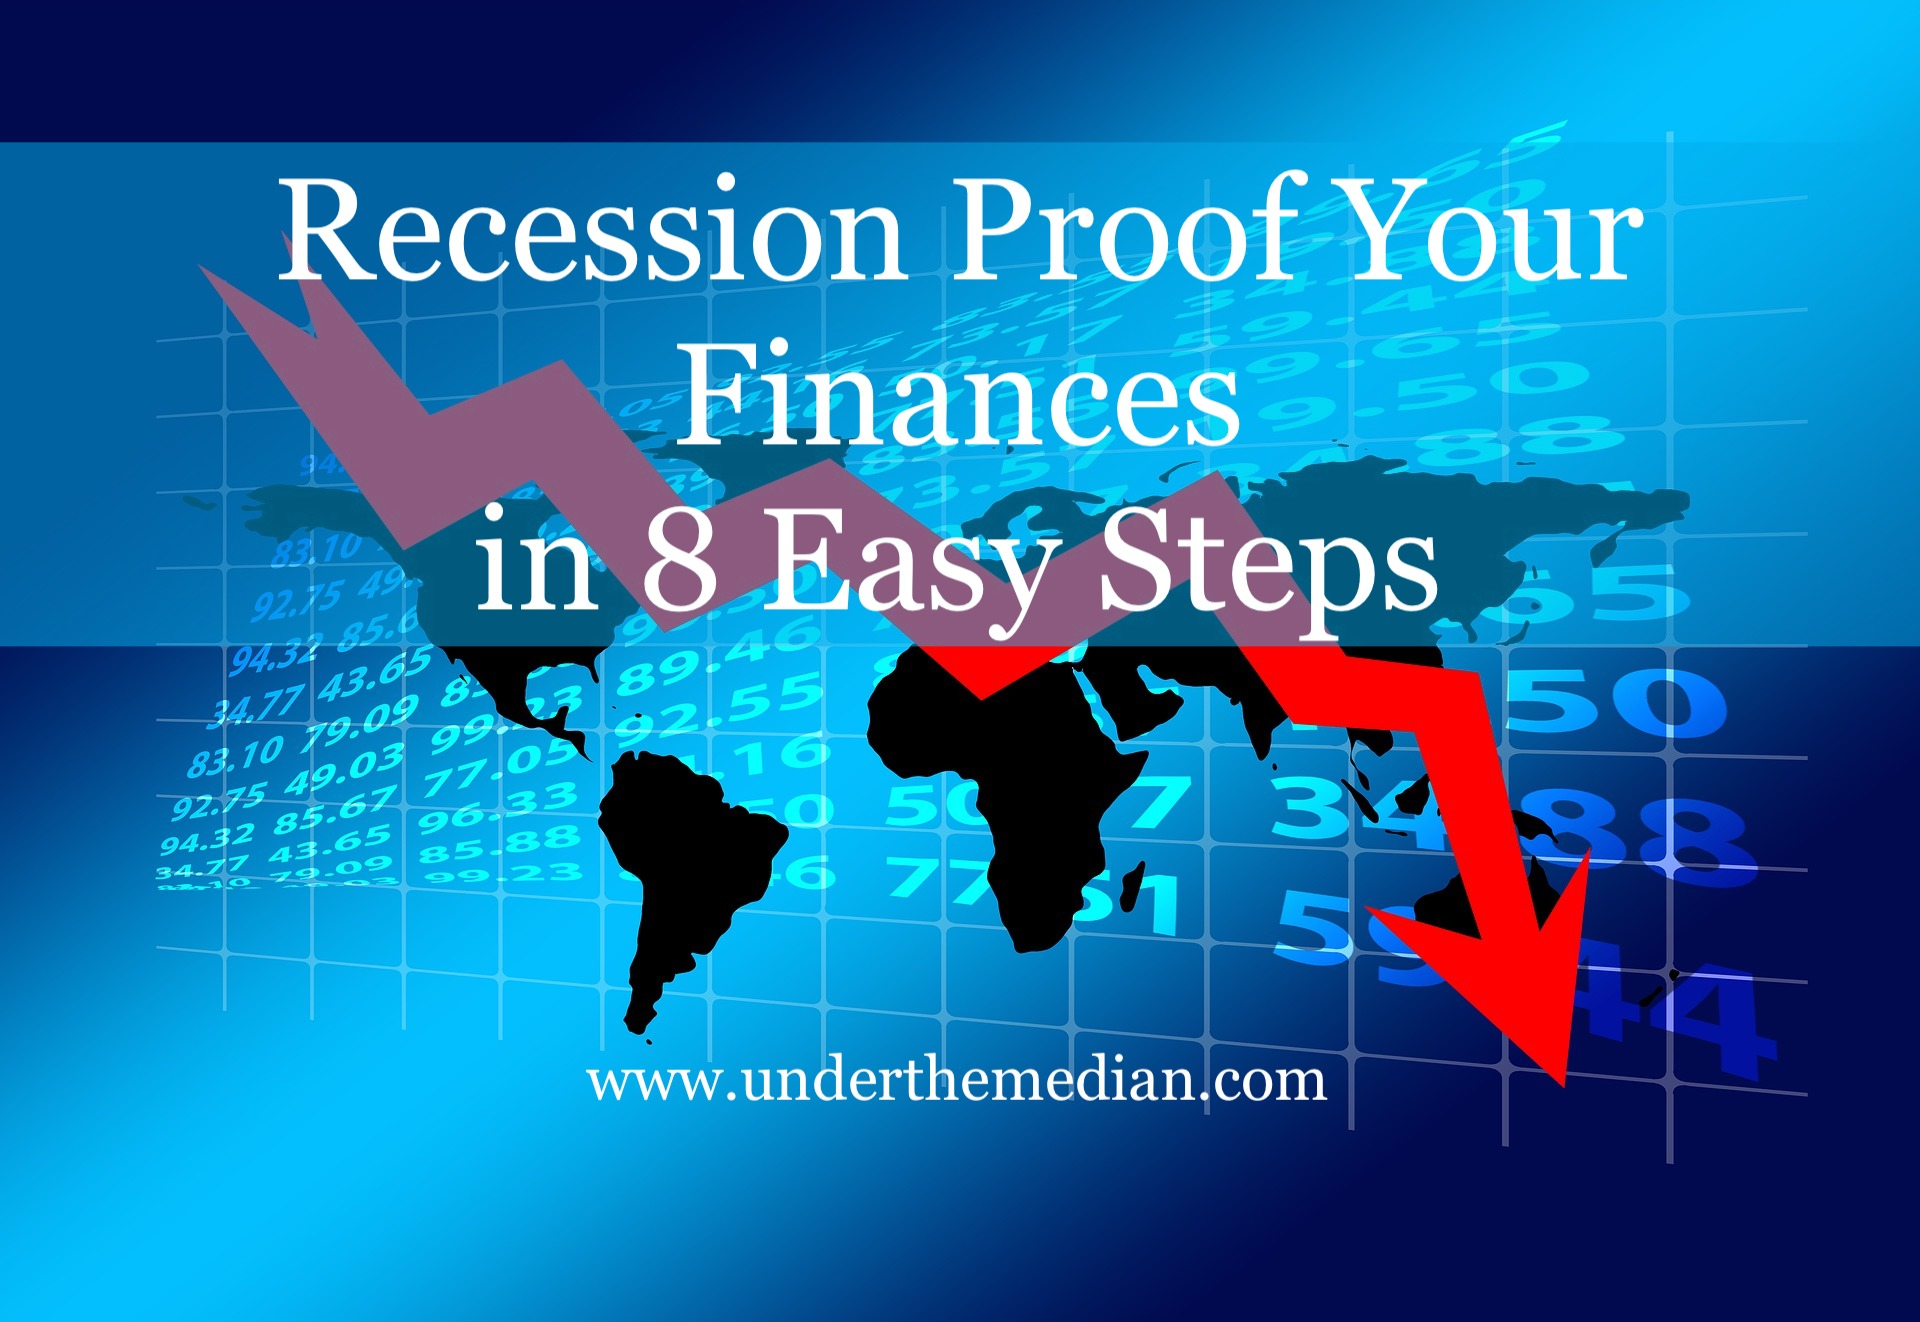 How to Recession Proof Your Finances in 8 Easy Steps